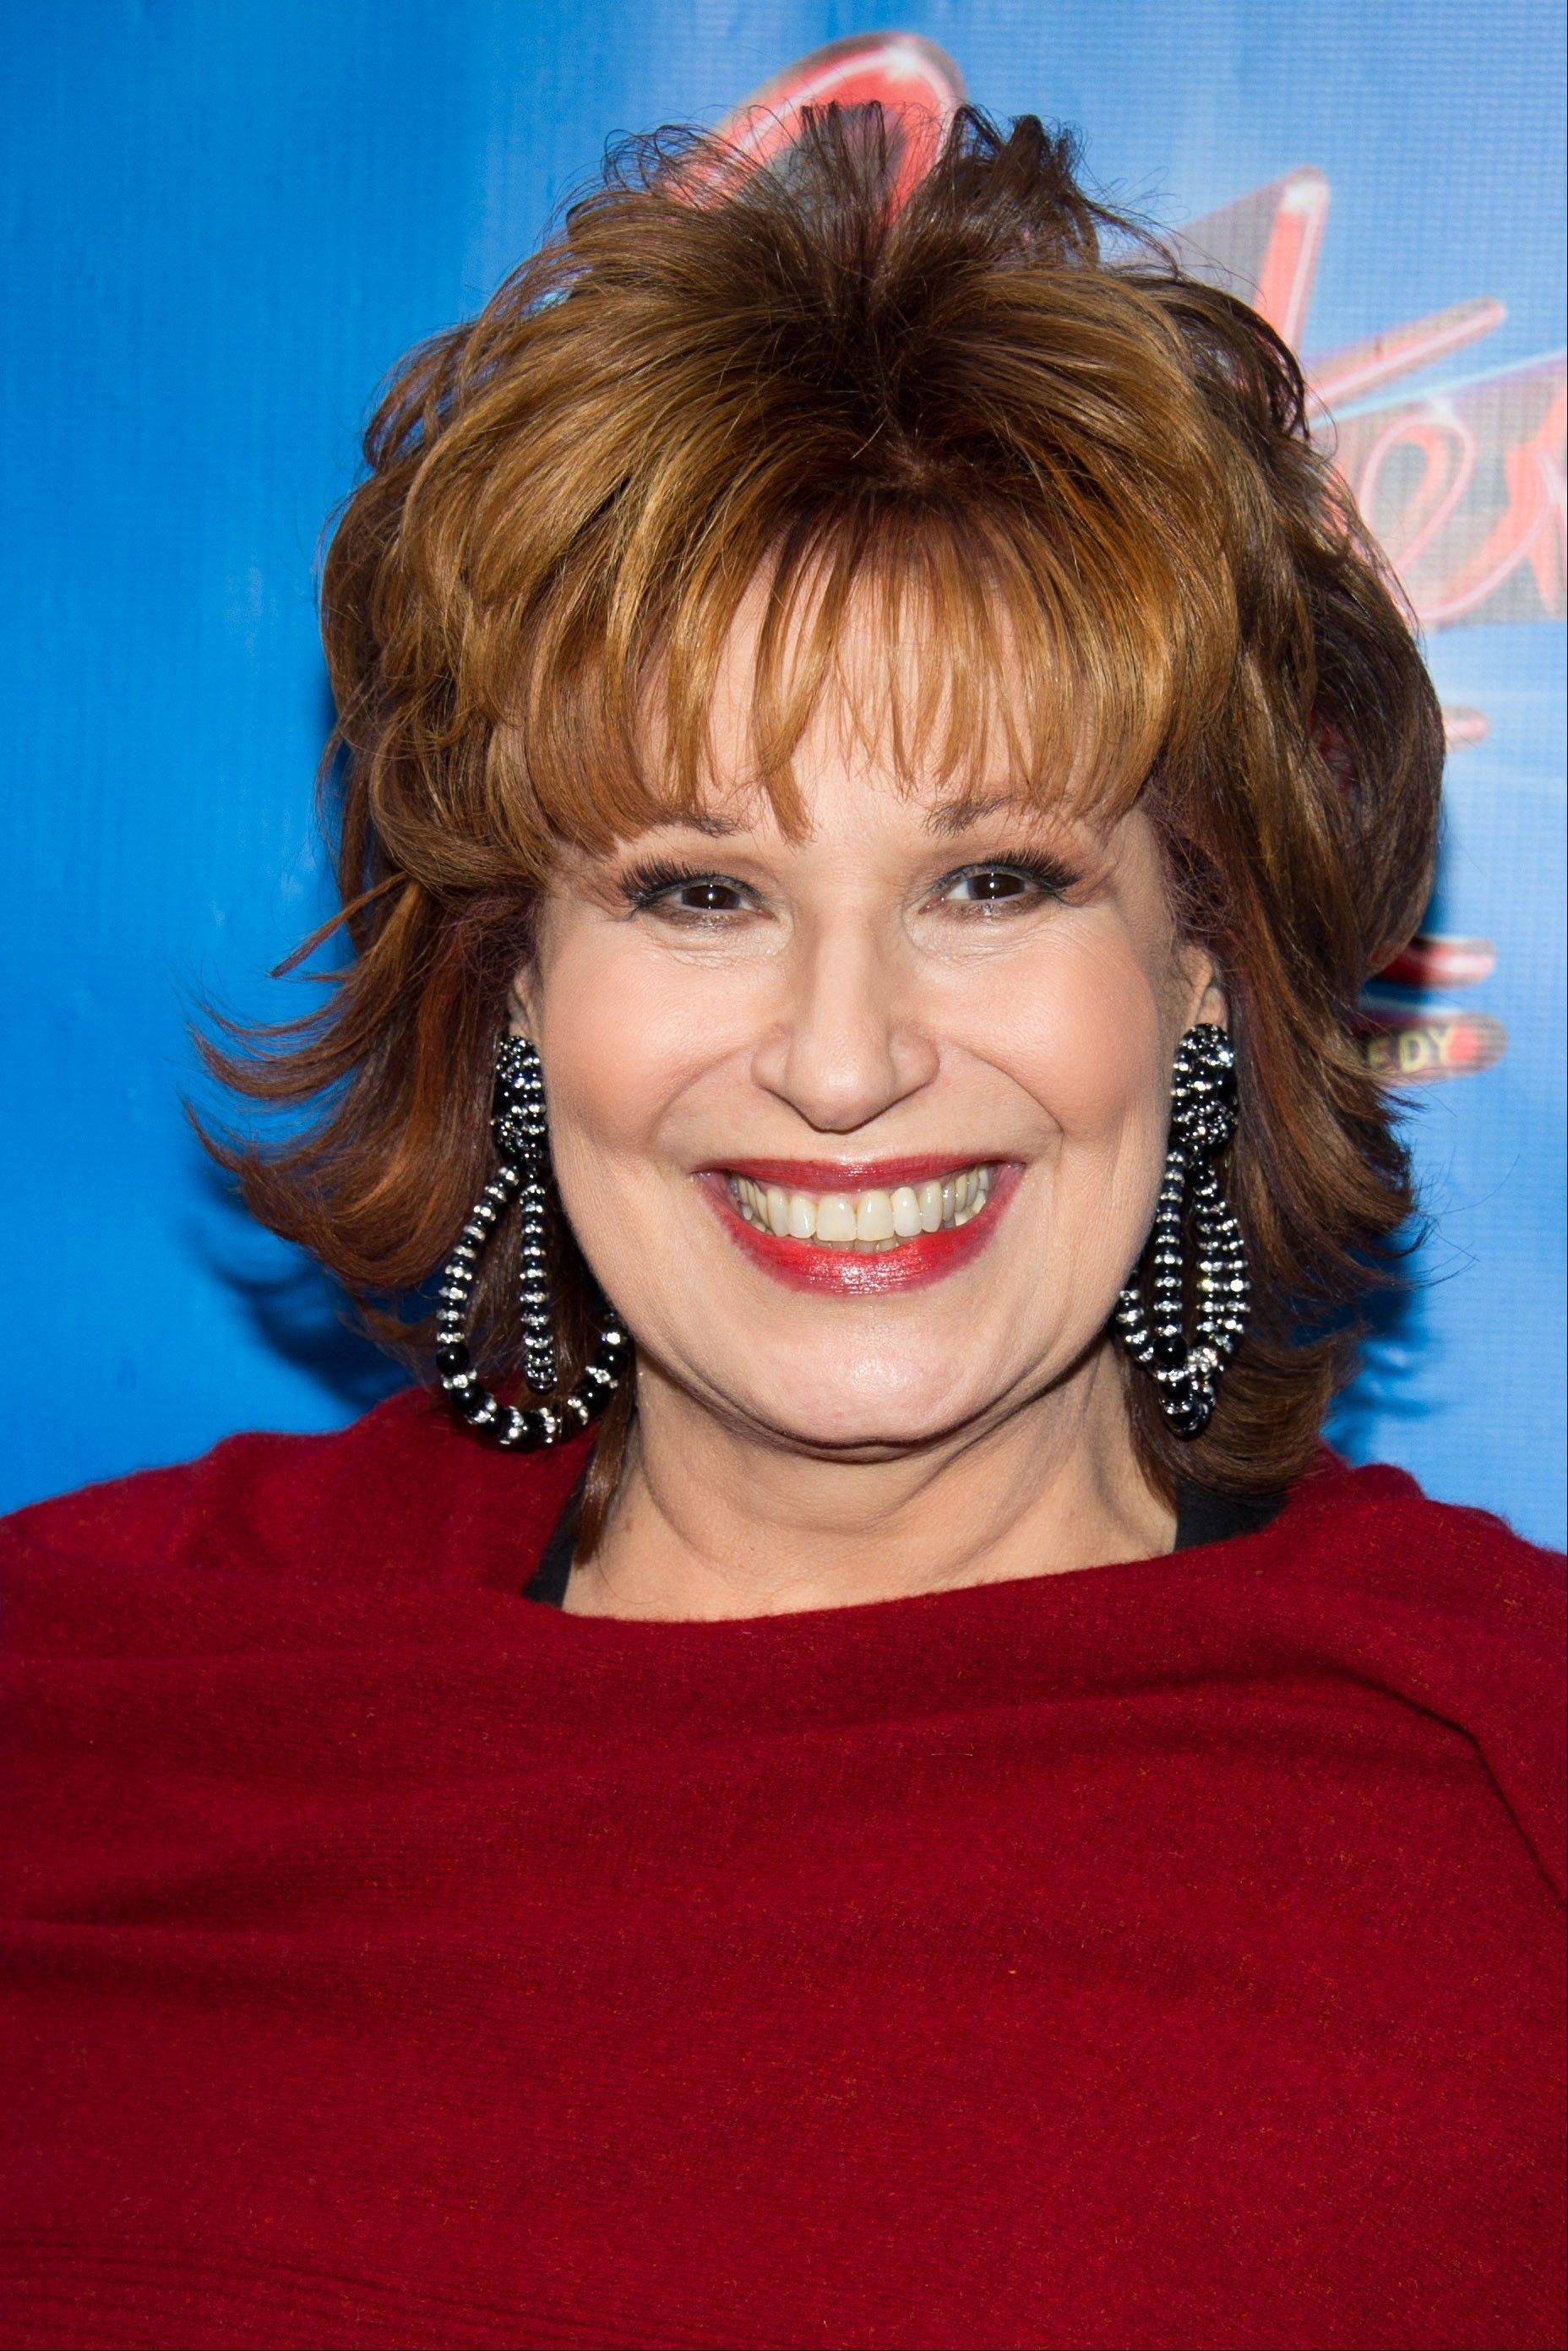 Current TV says Joy Behar will soon be joining the network to host a prime-time talk show.